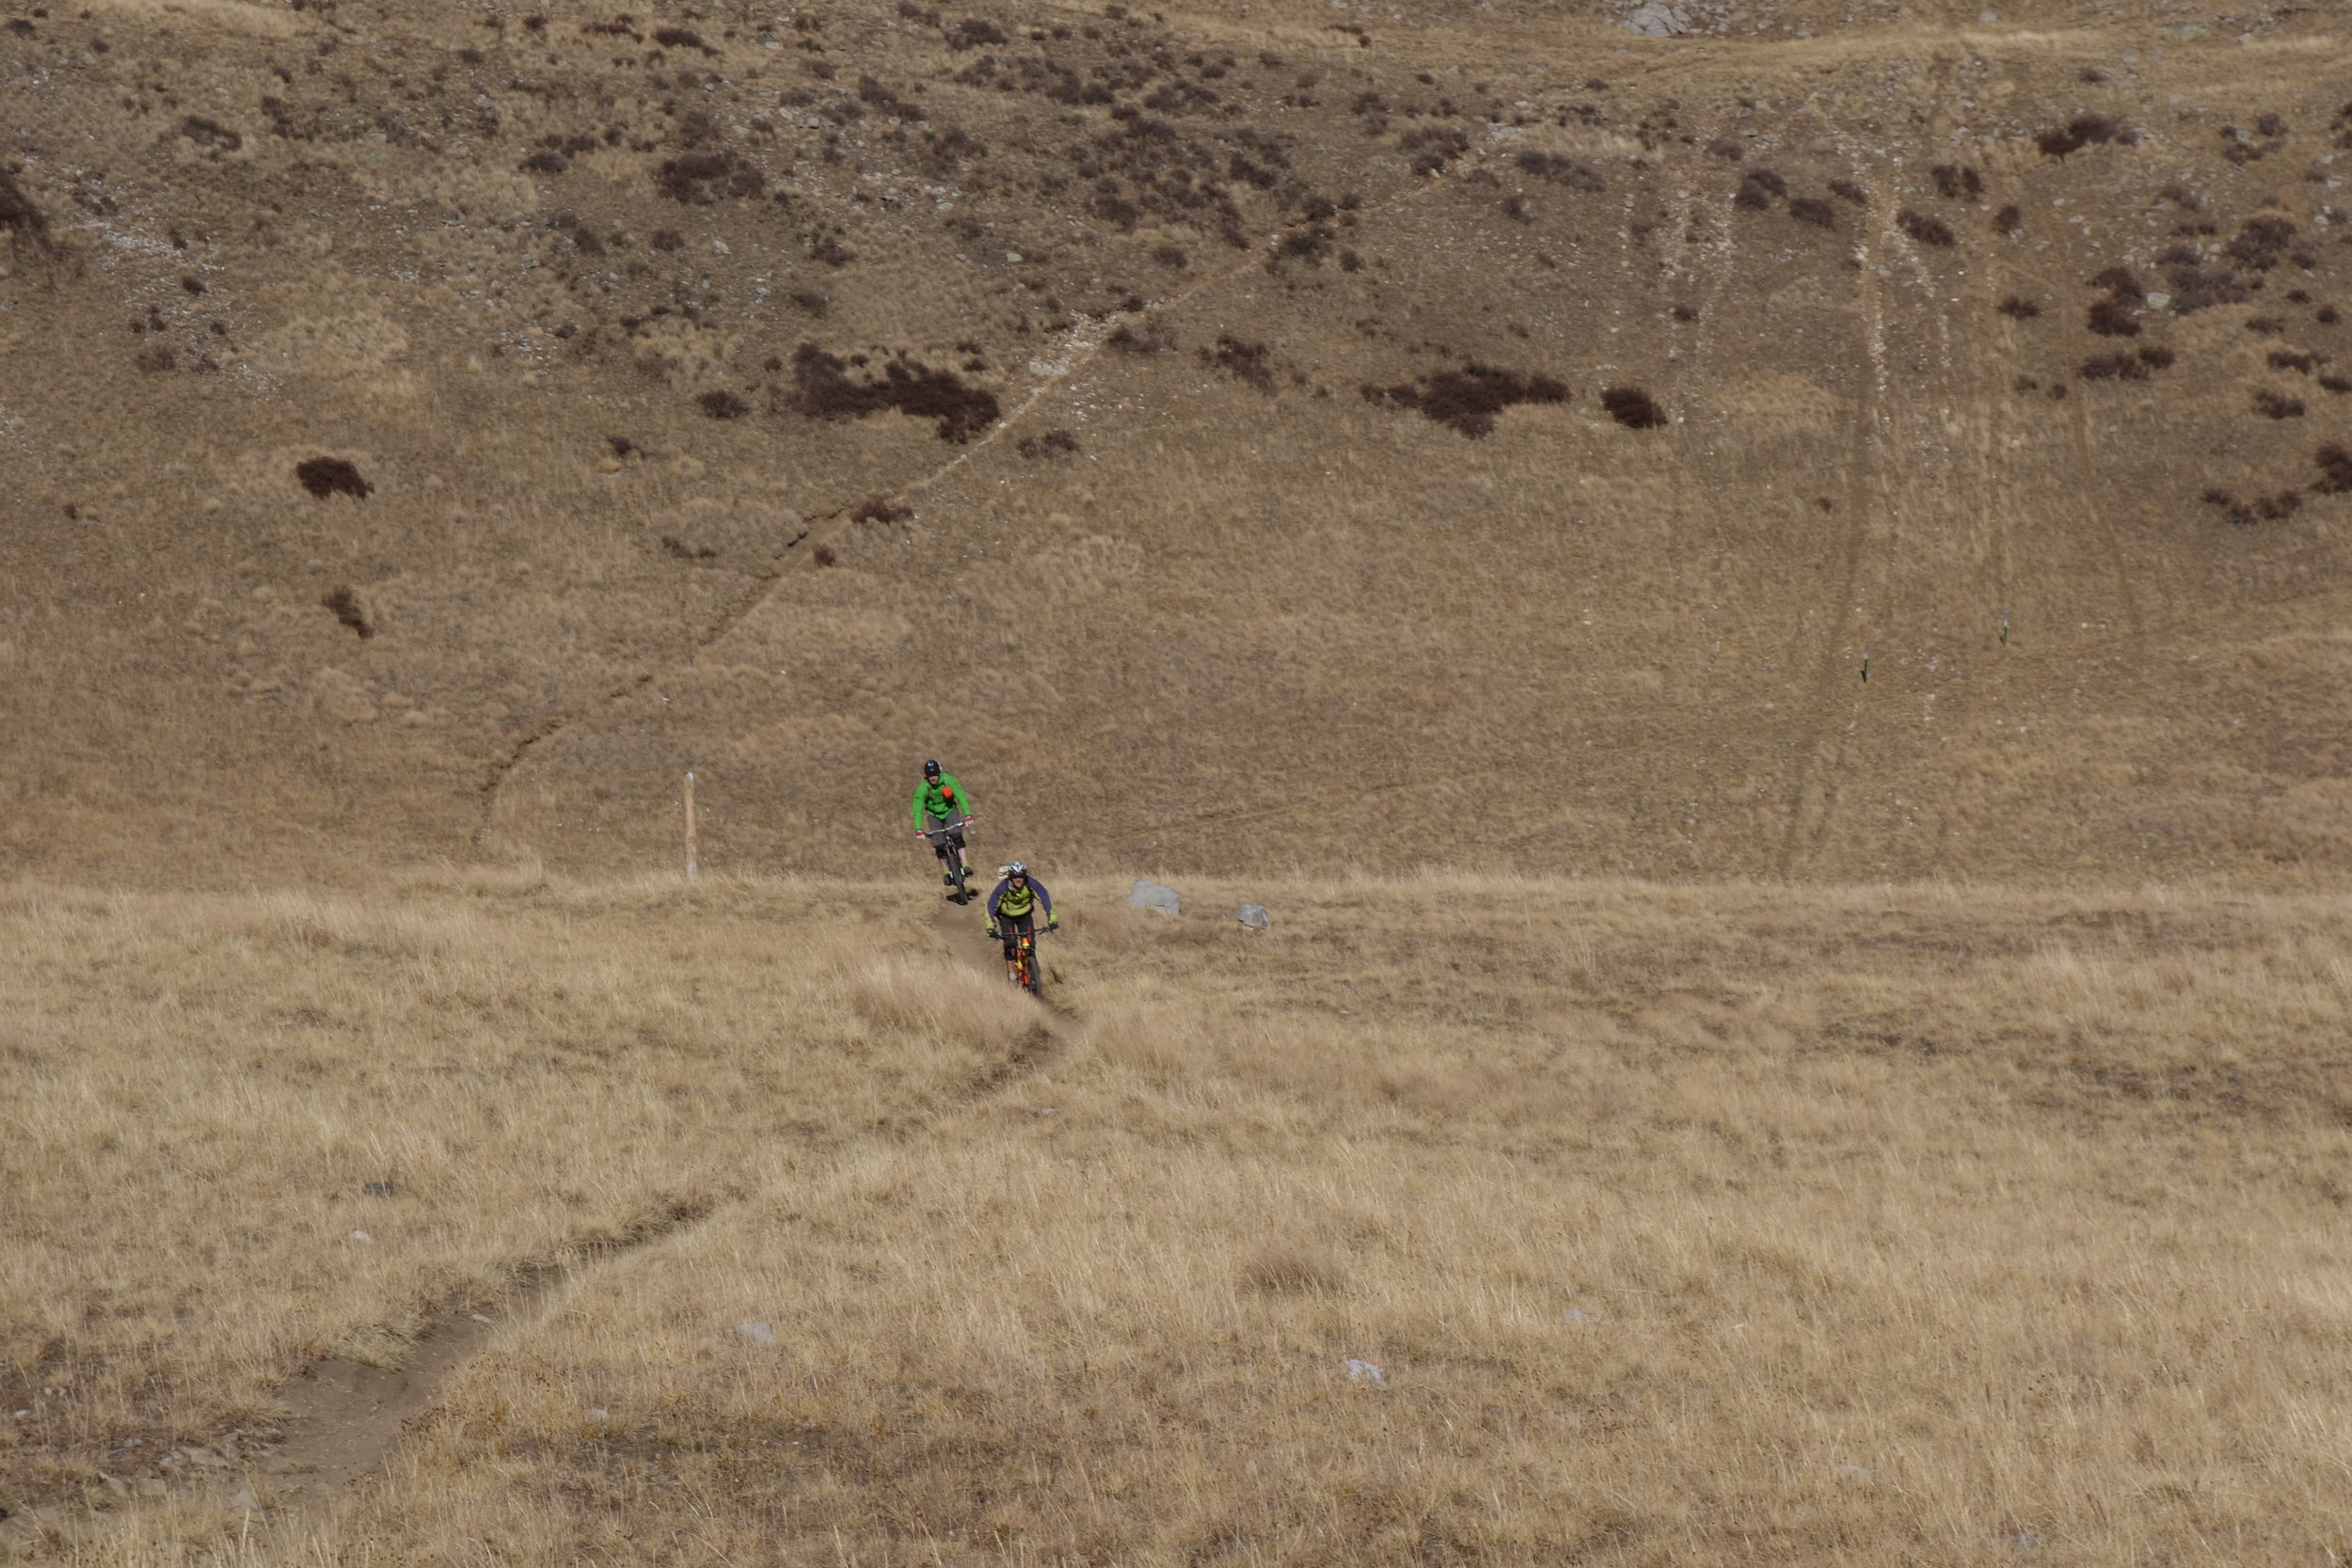 High speed, narrow trail action from James and Stefan.